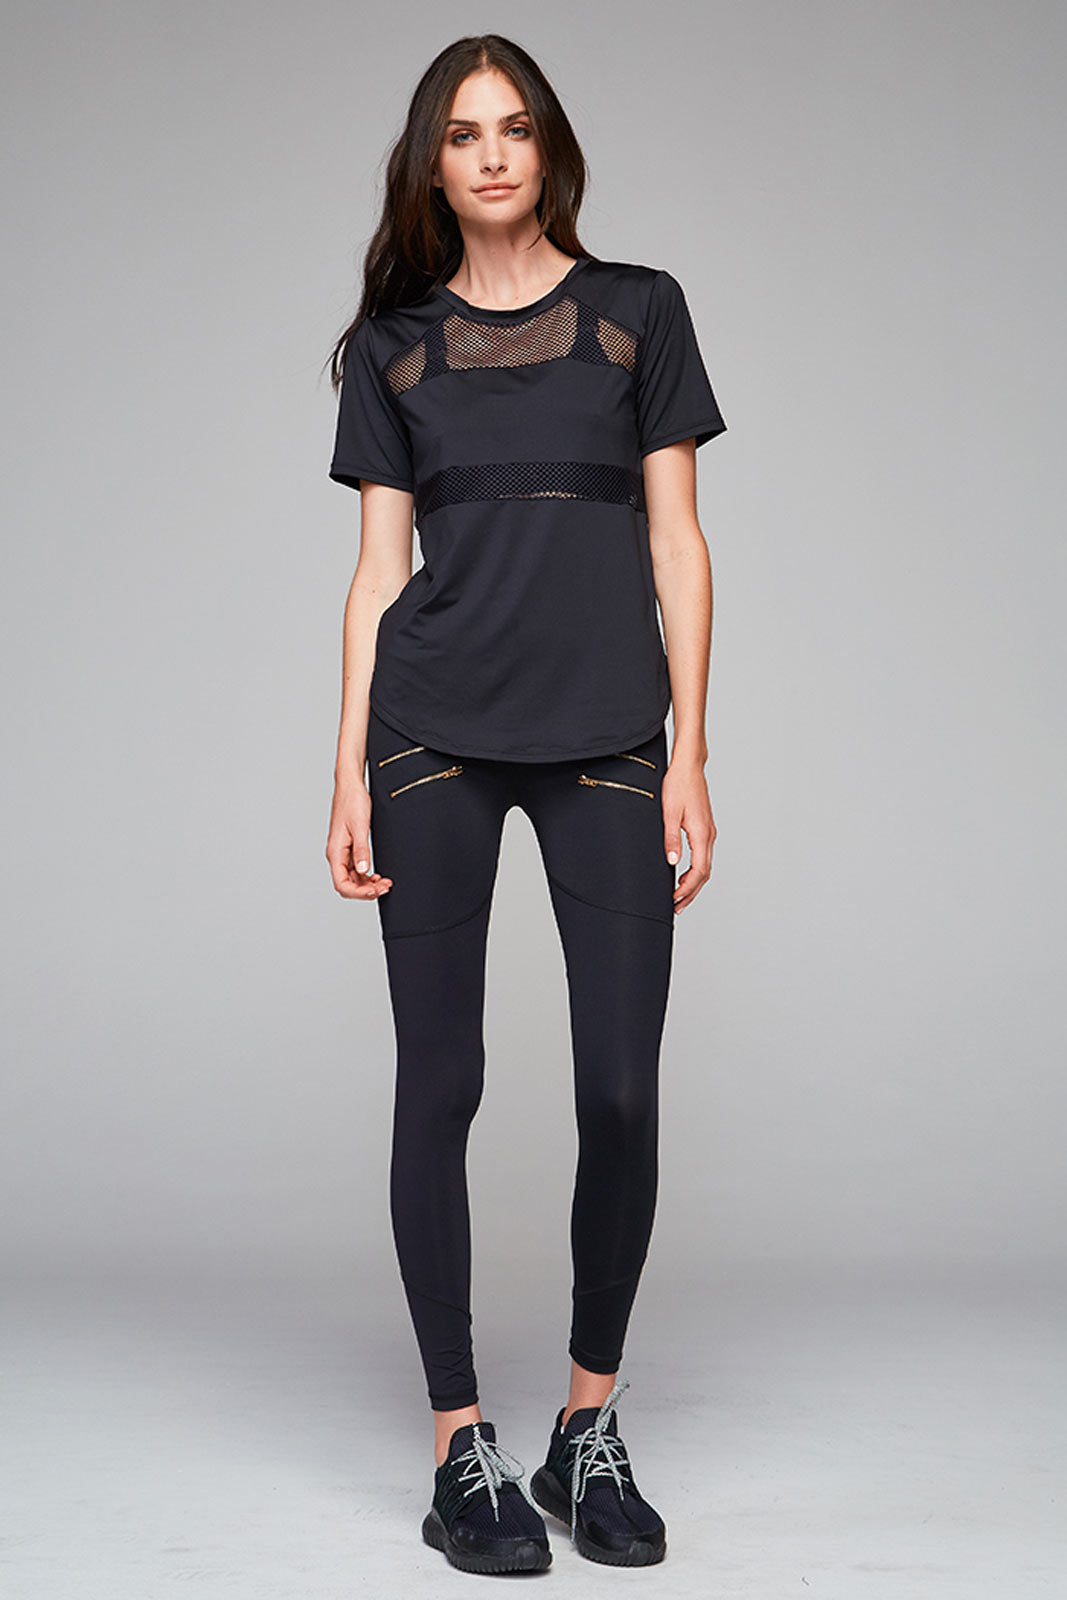 Varley Flint Top - Black image 2 - The Sports Edit